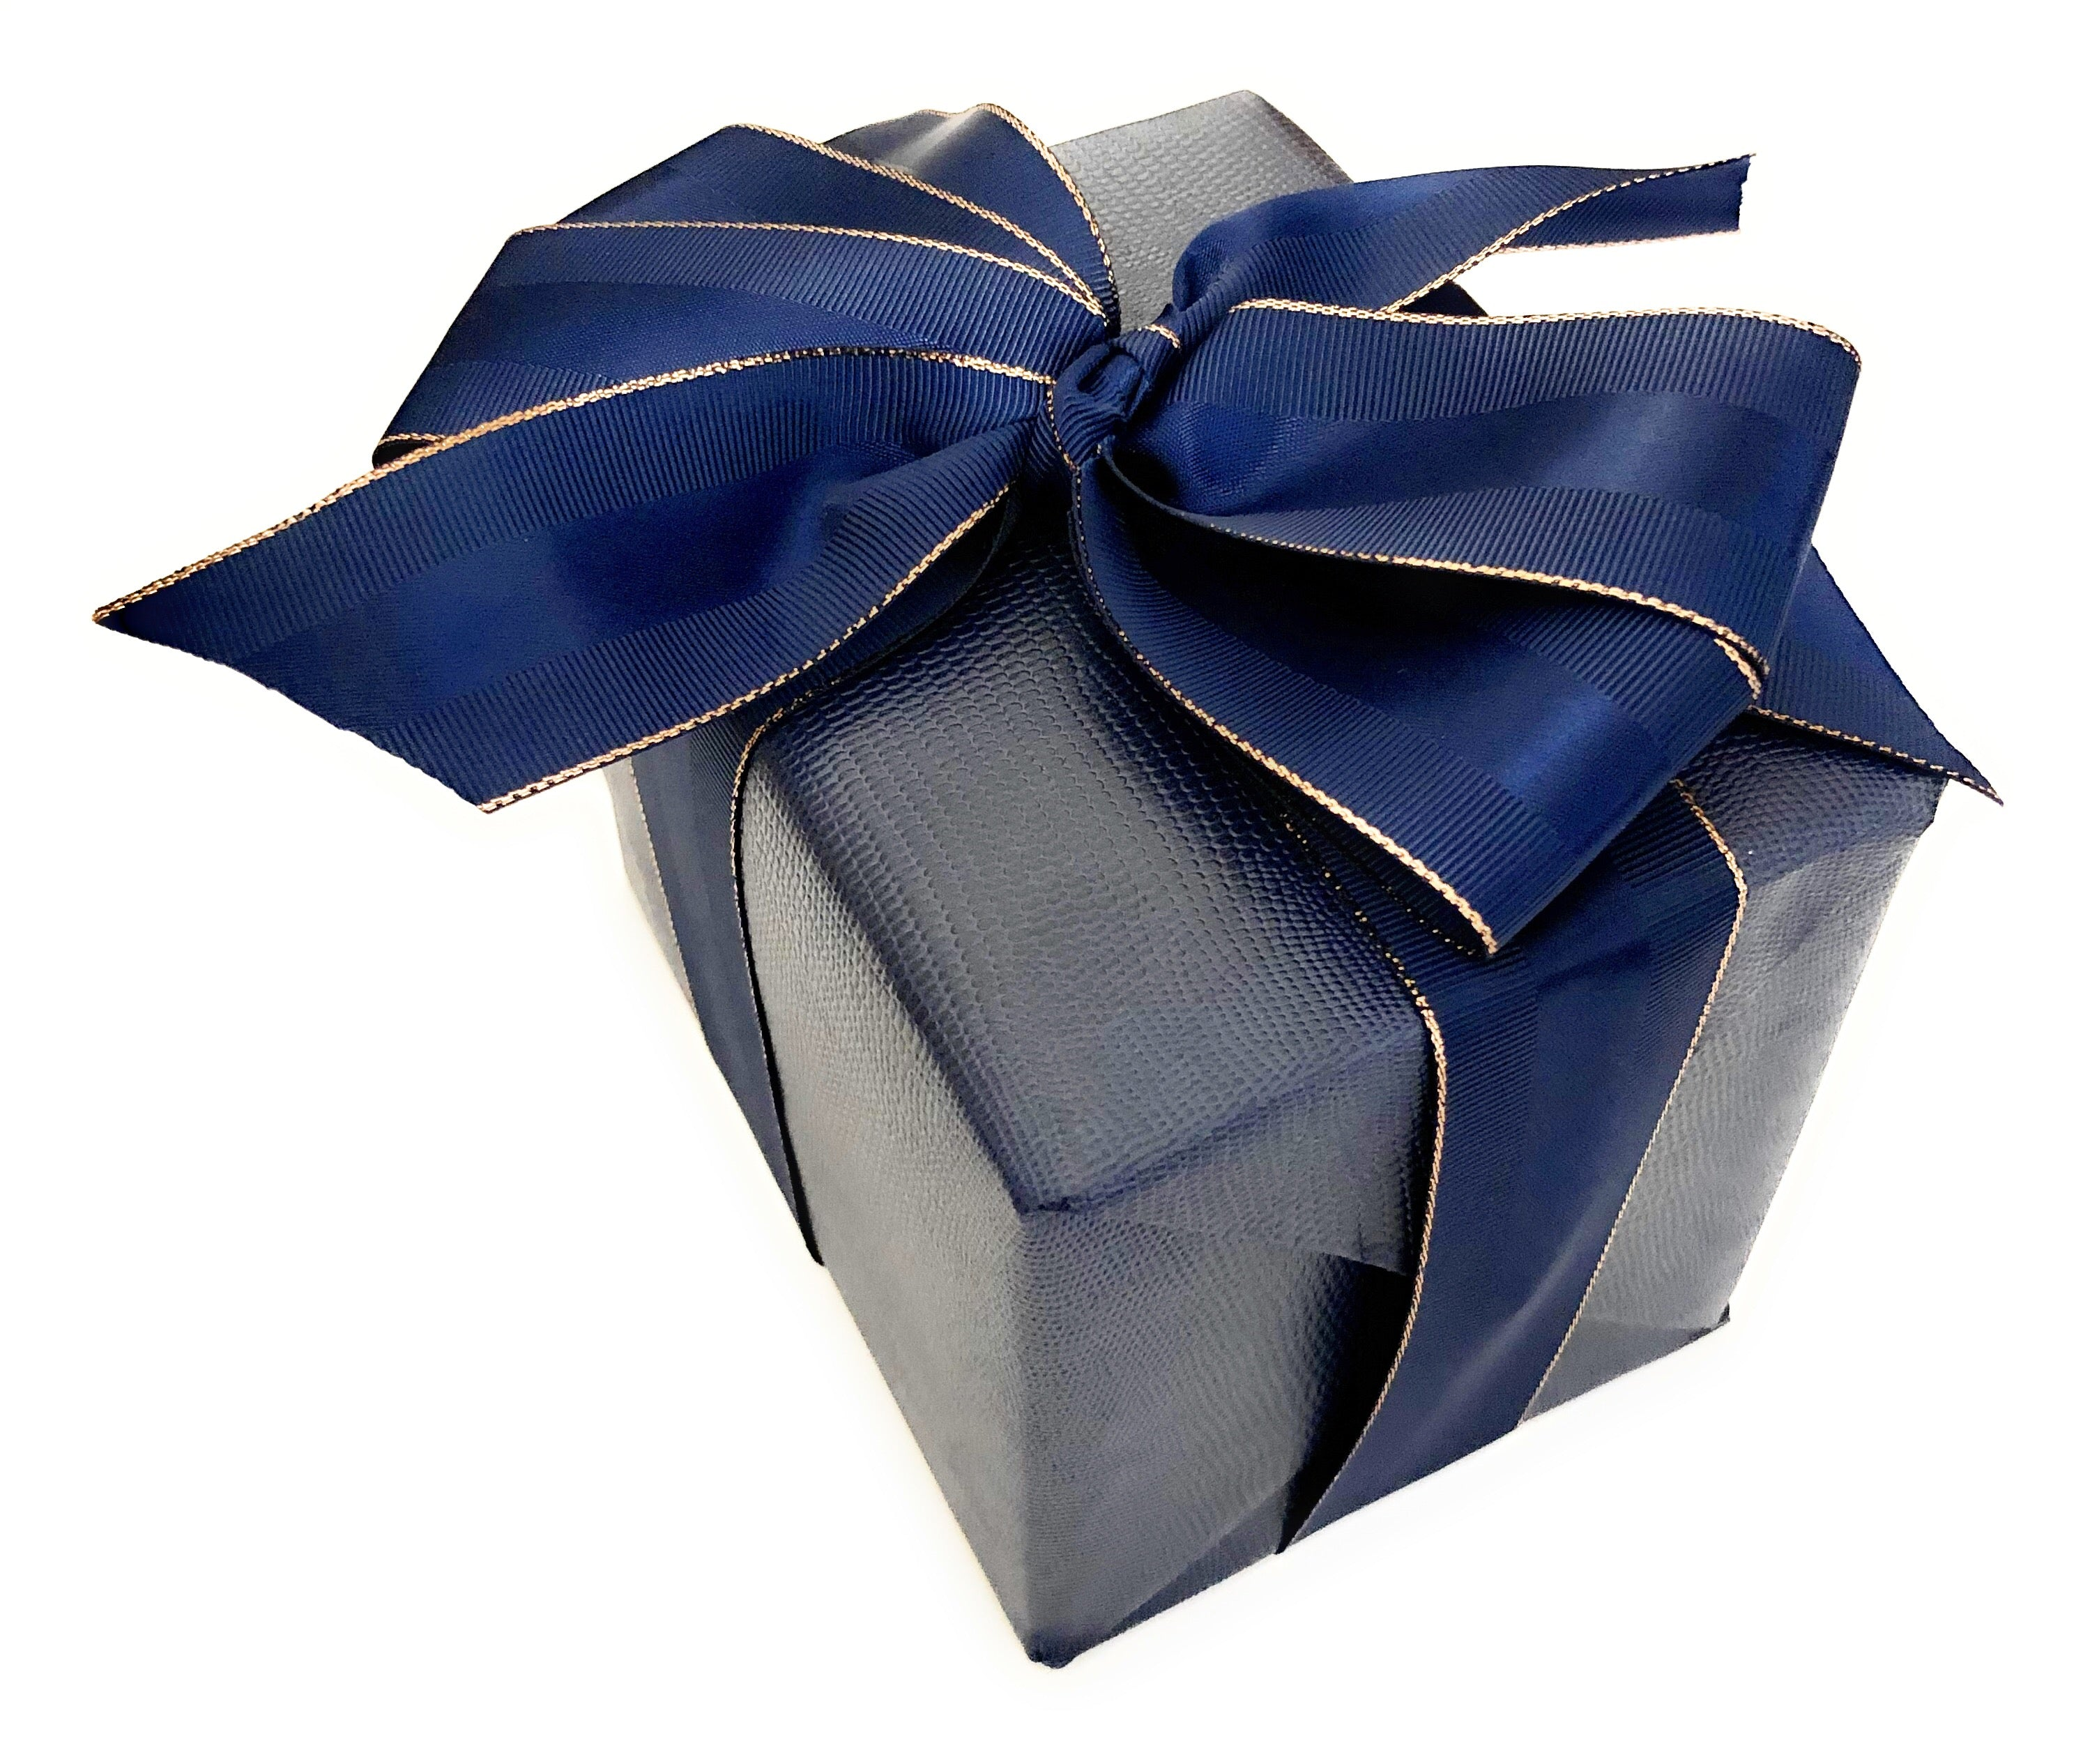 "Navy Blue Faux Leather Gift Wrapping Paper | 5 Sheets Each 31"" by 43"" 